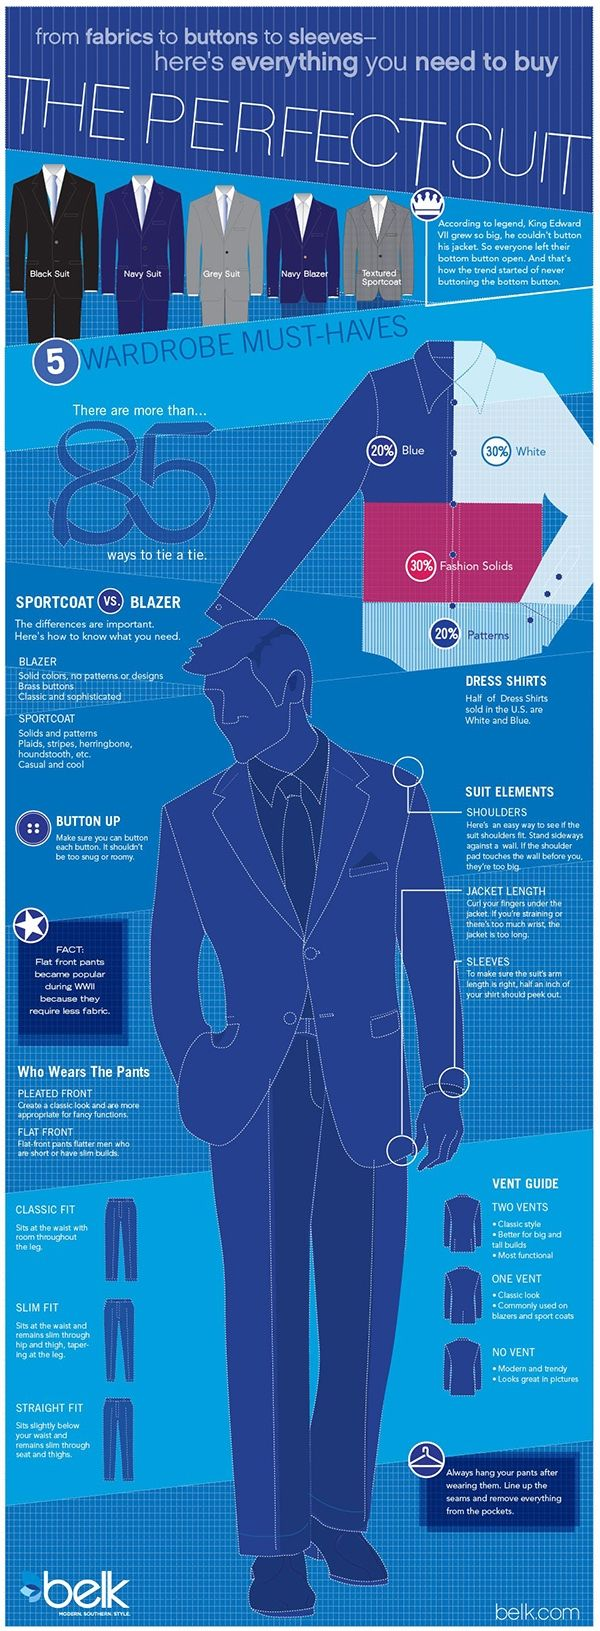 Here's everything you need to know to buy the perfect suit!  Fun fact: According to legend, King Edward VII grew so big, he couldn't button his jacket. So everyone left their bottom button open. And that's how the trend started of never buttoning the bottom button.